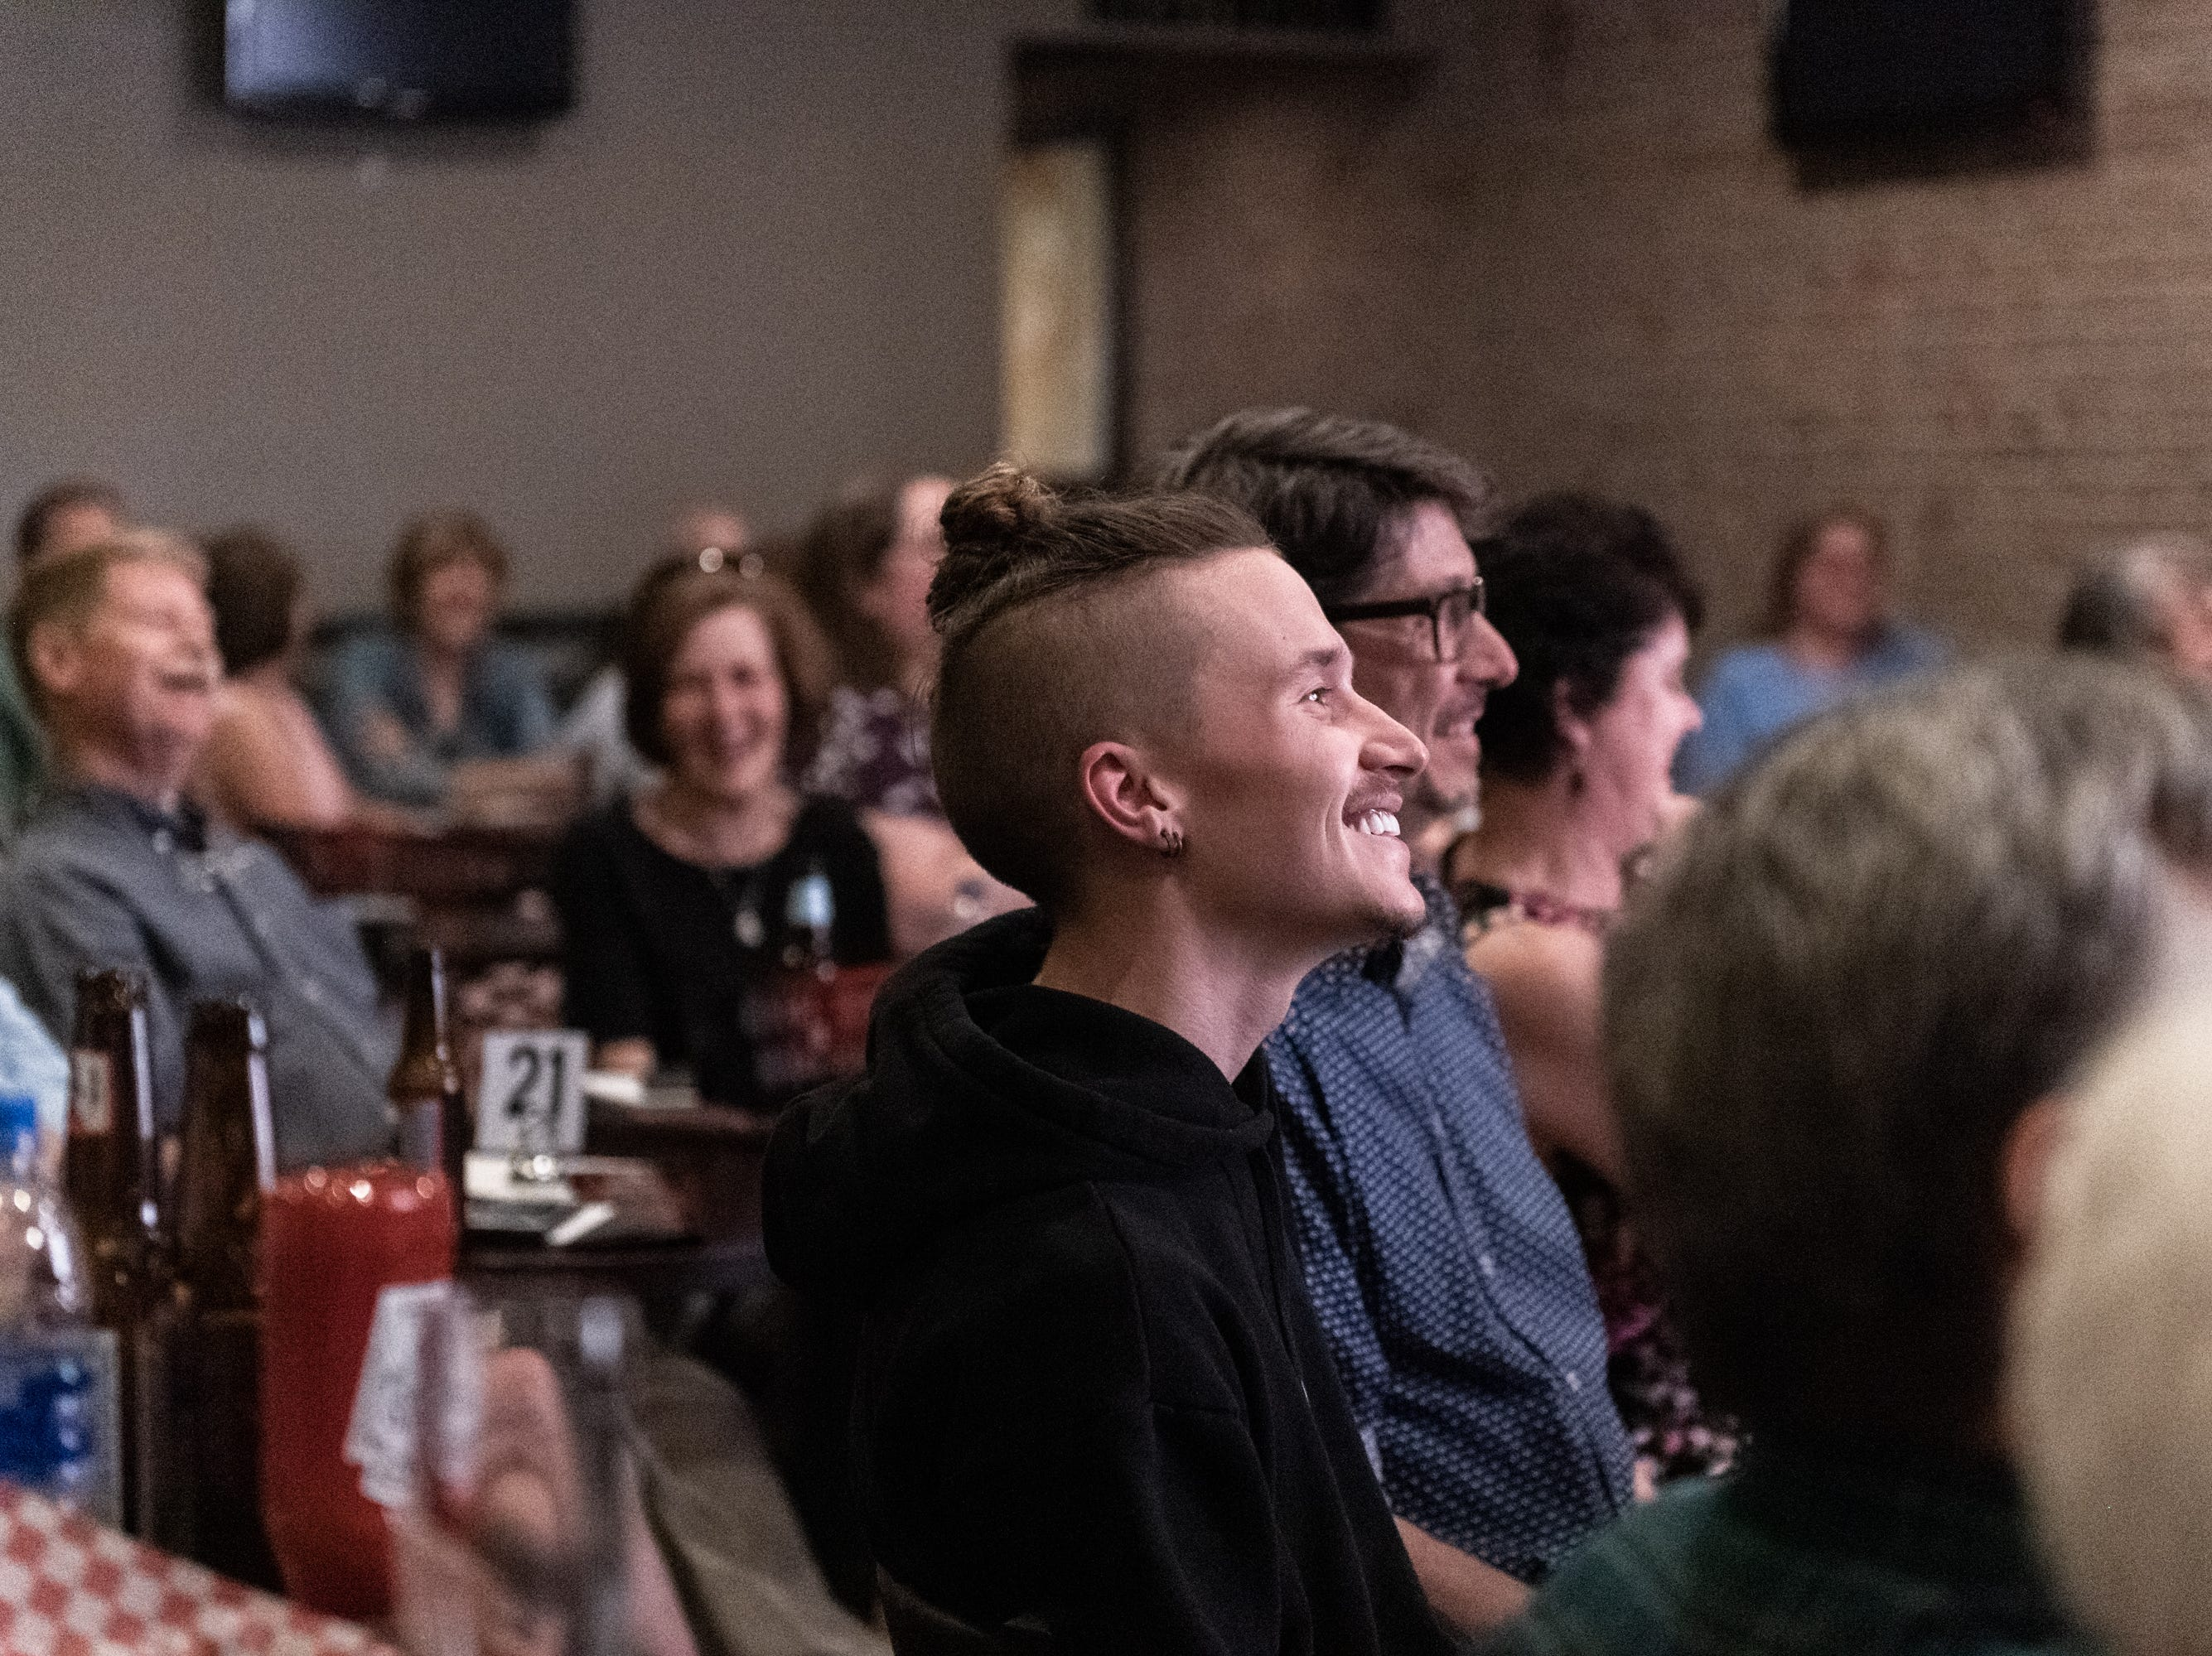 The Greenville News held its Greenville Storytellers Project event at the Comedy Zone Tuesday, May 14, 2019.